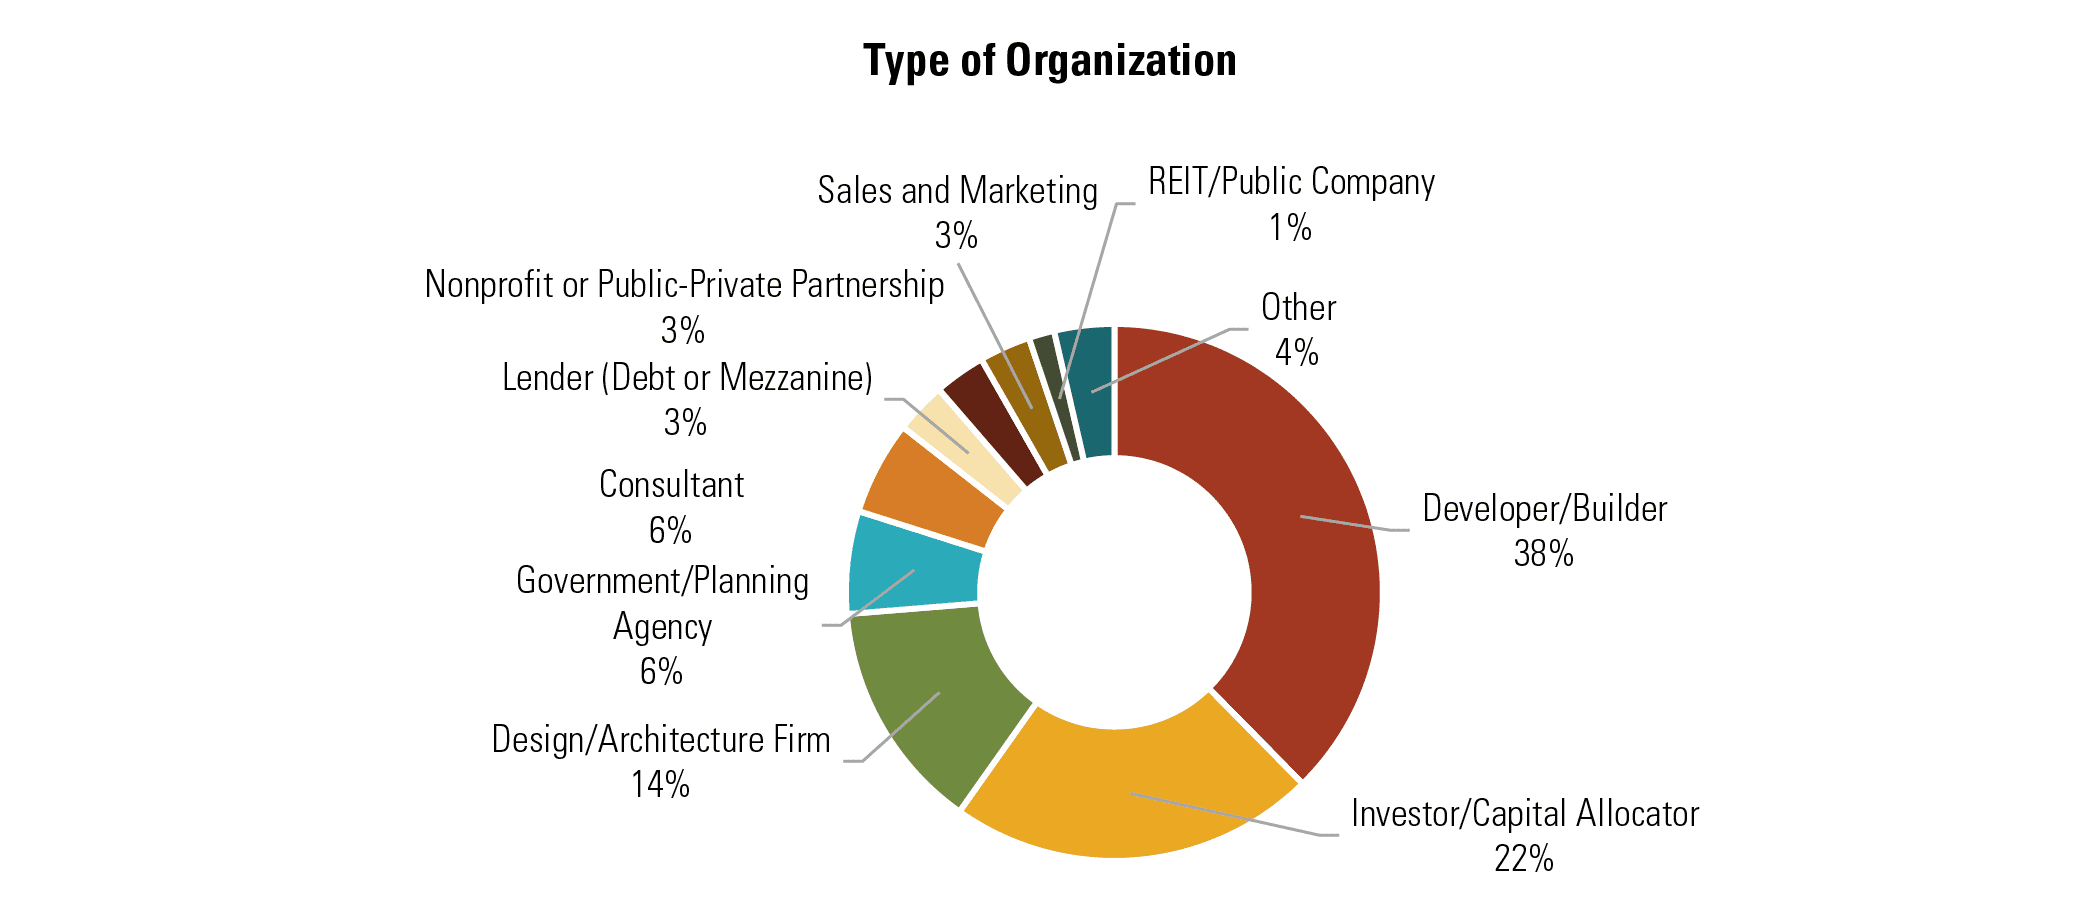 Type of Organization